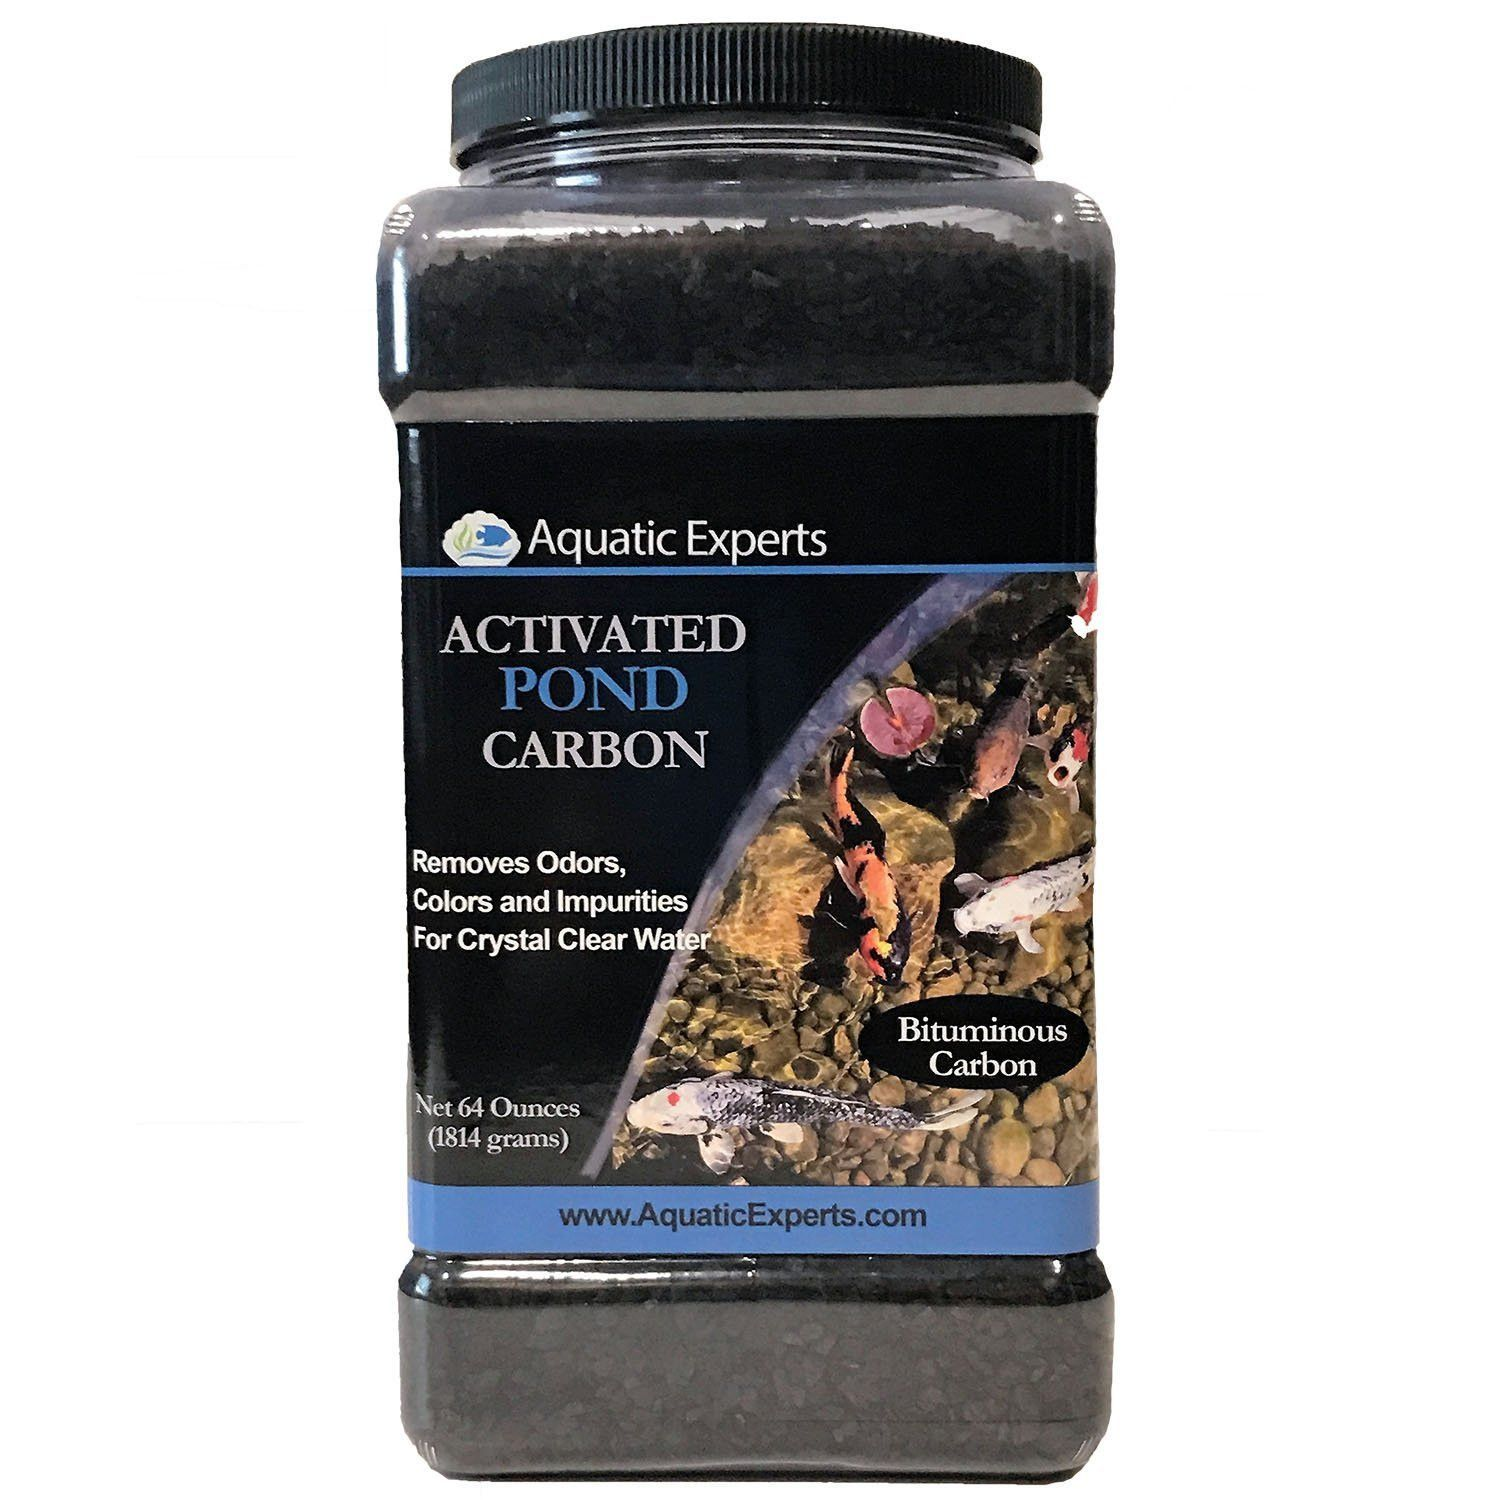 Activated Pond Carbon 56 ounce (bulk container) for